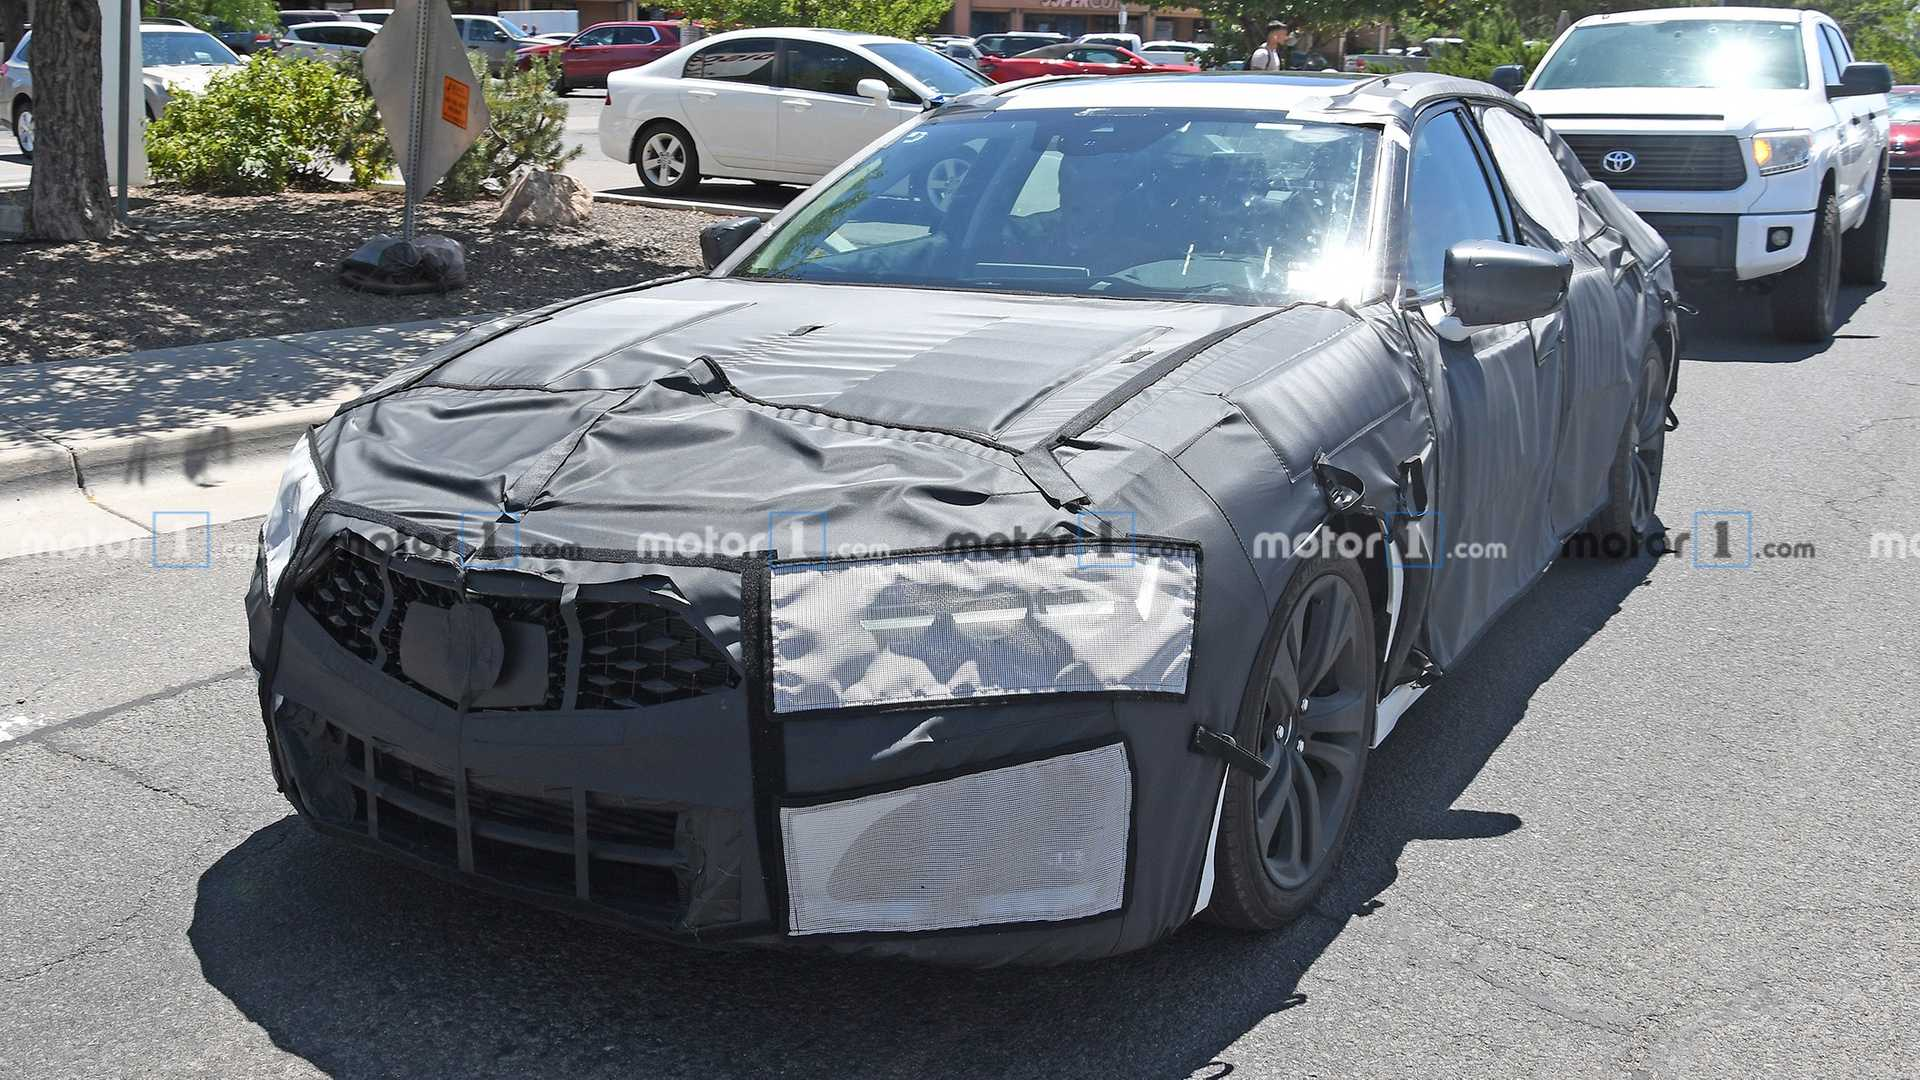 2021 Acura Tlx Spy Photos Provide Best Look Yet At The Interior